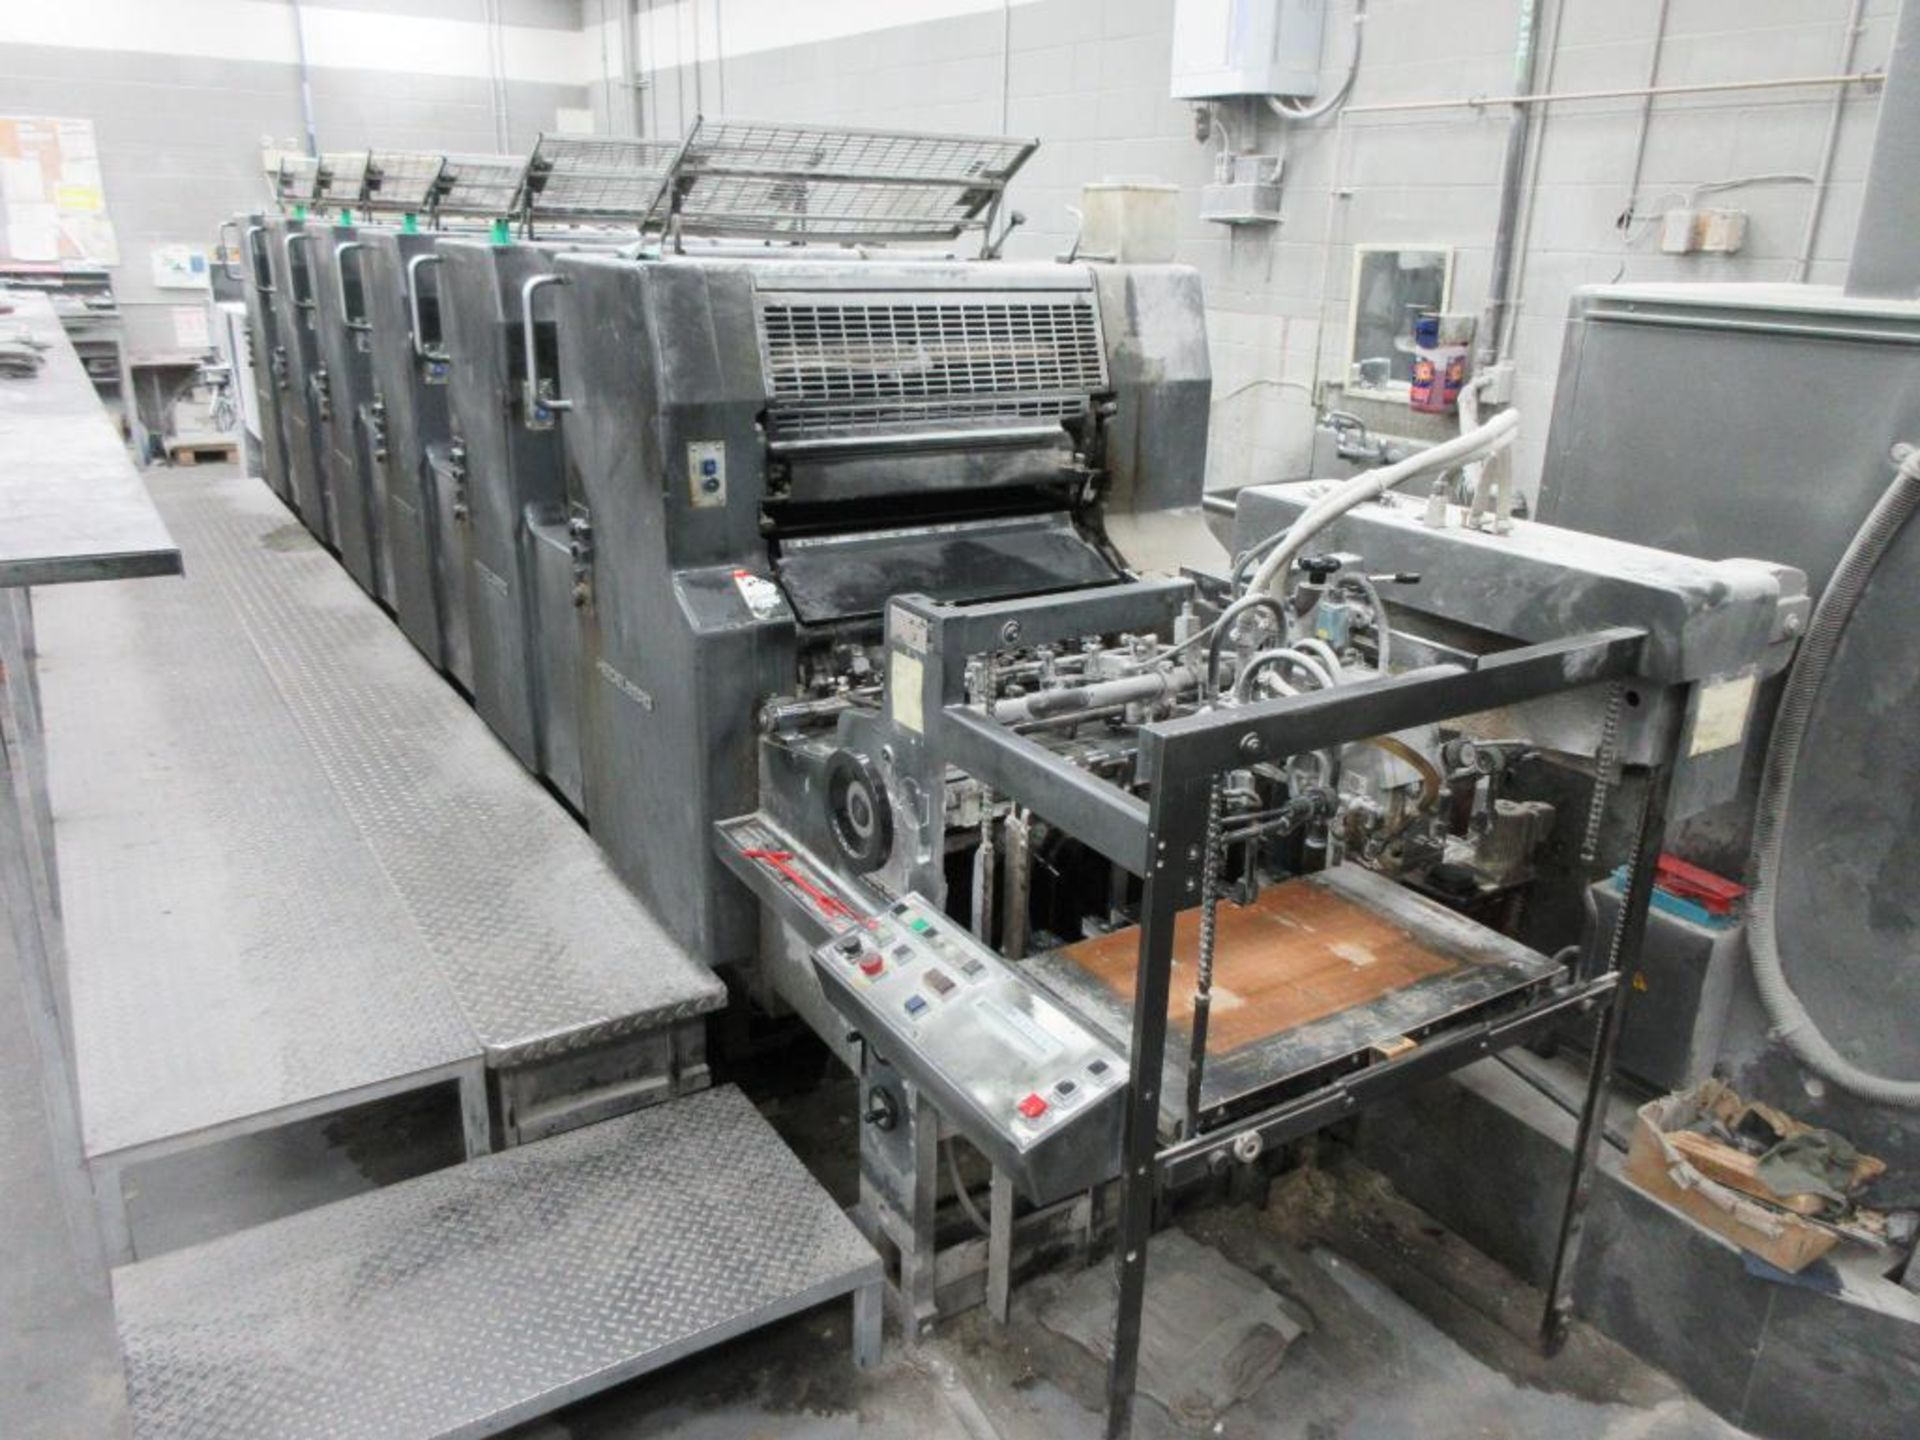 HEIDELBERG MOSP-H 19 x 25_, 6 color sheet fed offset perfecting press with high pile delivery, sn 61 - Image 2 of 10